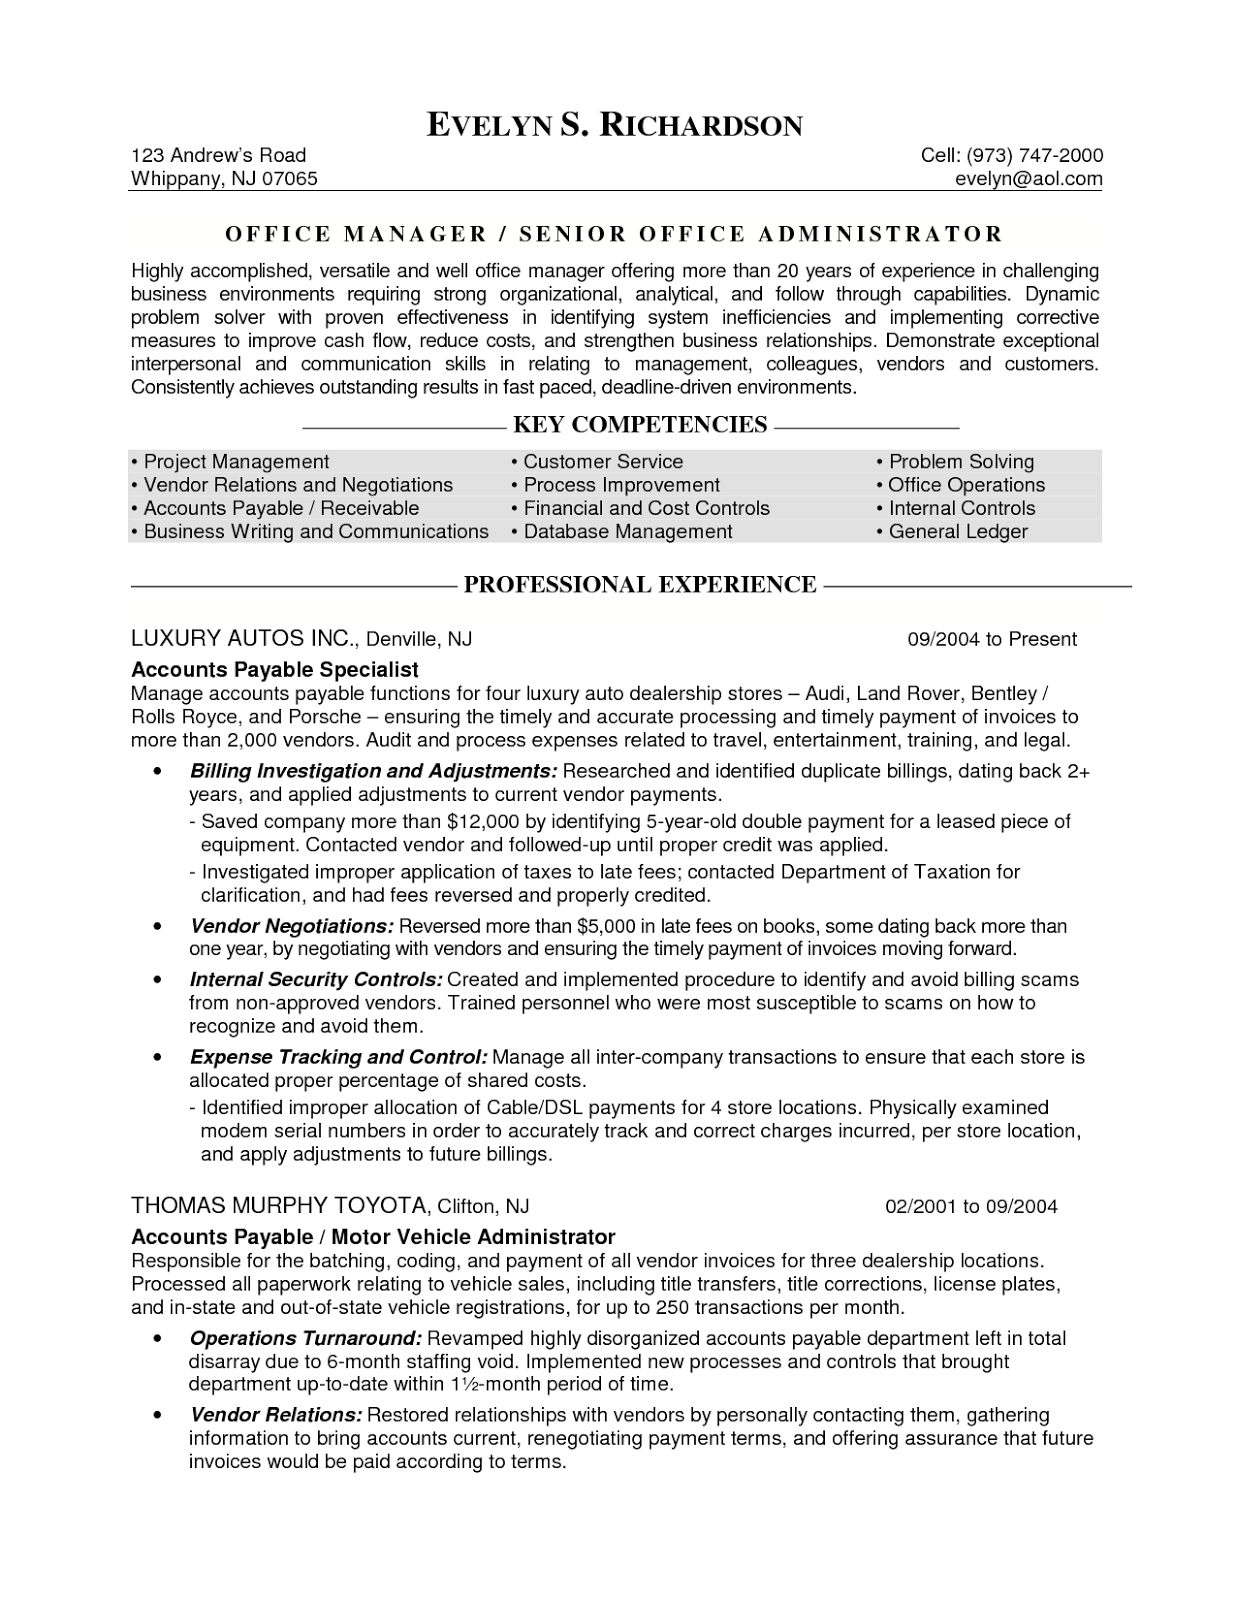 Store Worker Resume Sample The Best Resume Ever Pdf Active